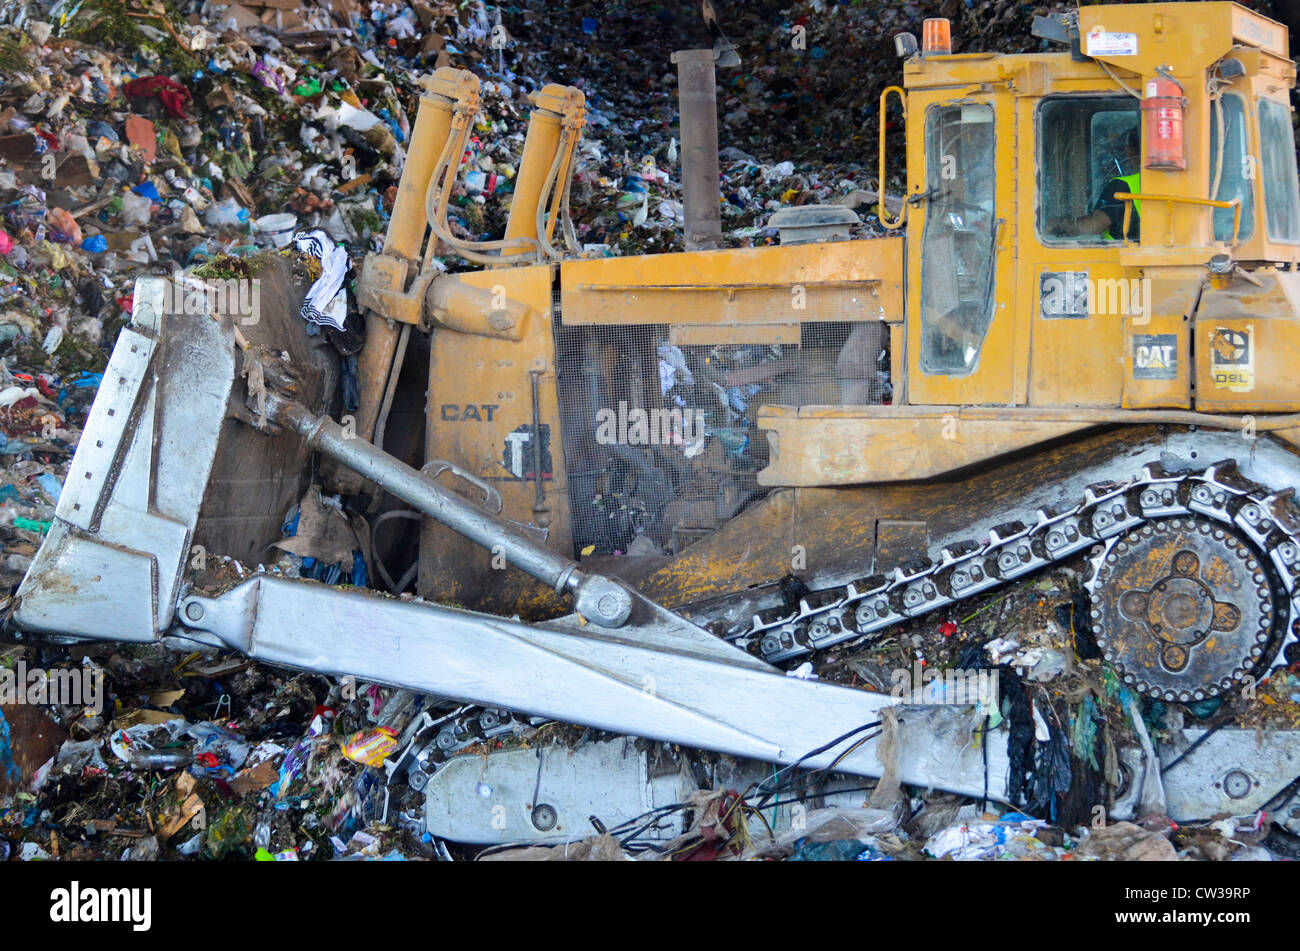 Israel, Hiriya, The largest waste transfer station in the Middle East. - Stock Image